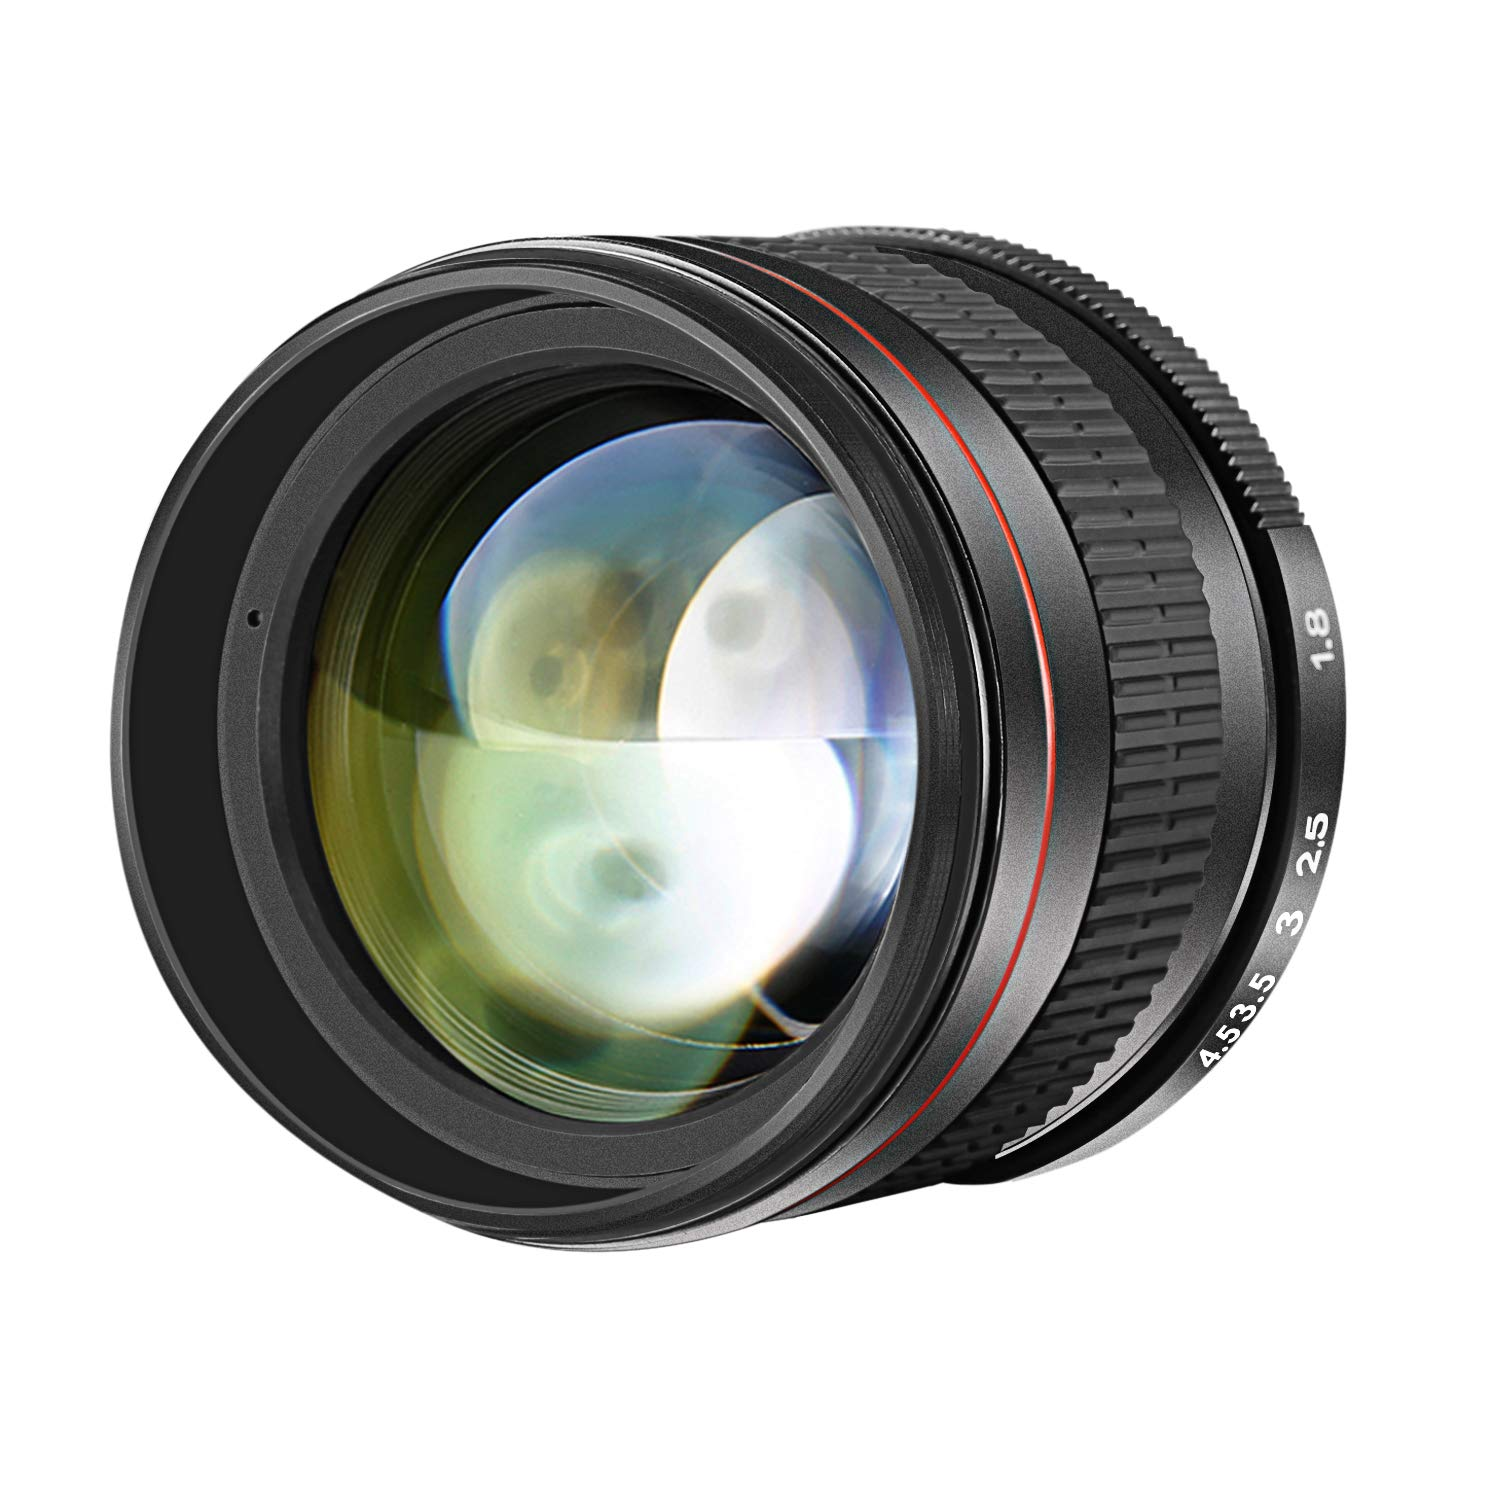 Neewer Multi-coated 85mm F/1.8 Para Canon Eos